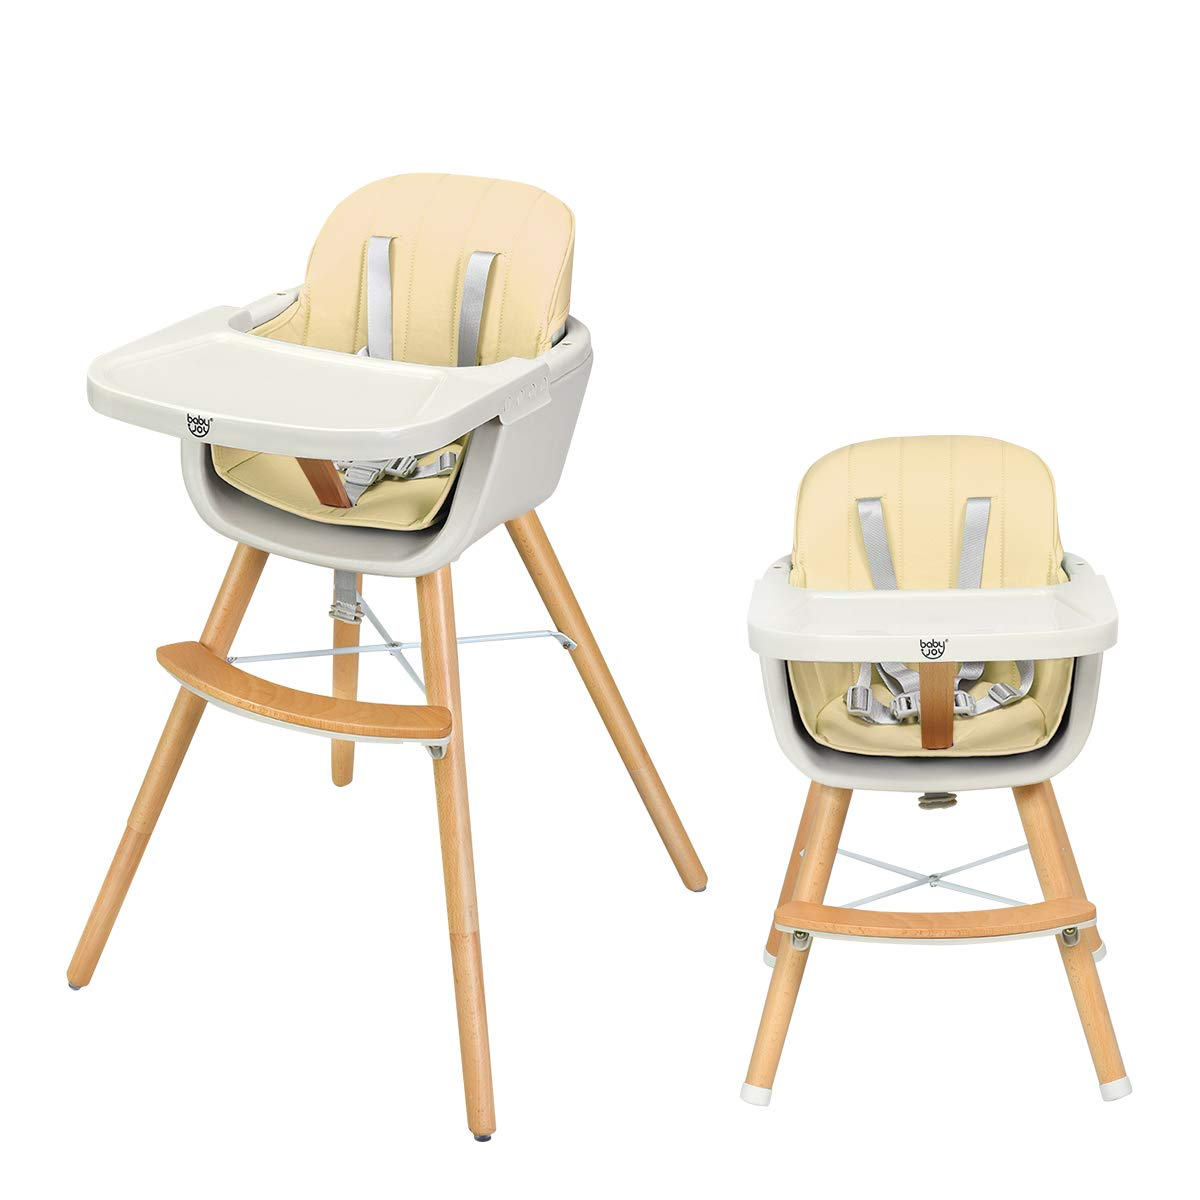 BABY JOY Convertible High Chair, Wooden 3 in 1 Multi-Functional Highchair with Adjustable Legs, 5-Point Seat Belt, PU Cushion, Adjustable Tray and Detachable Footrest for Baby and Infants (Beige) by BABY JOY